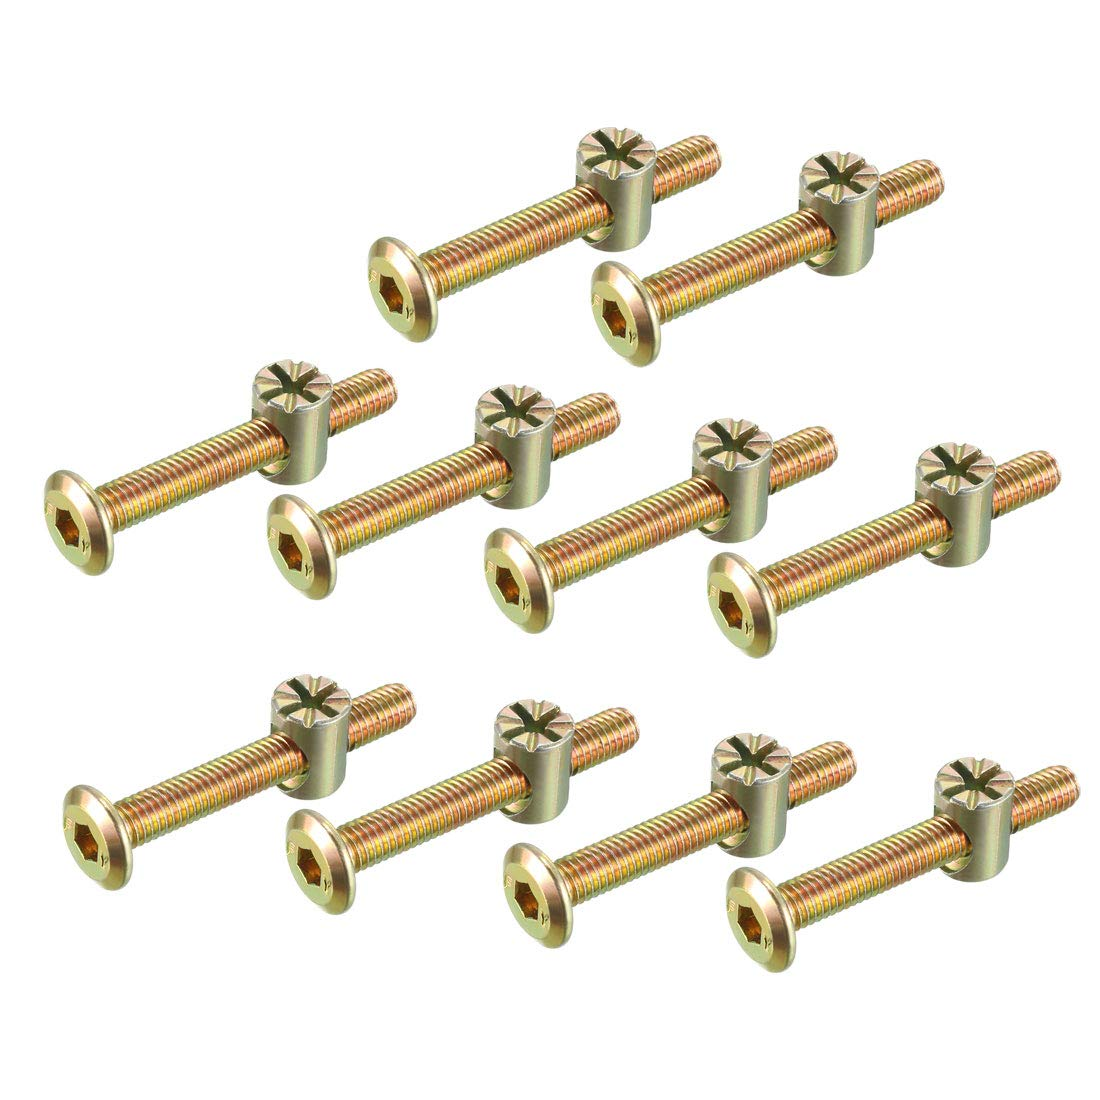 sourcing map M6x45mm Furniture Bolt Nut Set Hex Socket Screw with Barrel Nuts Phillips-Slotted Zinc Plated 10 Sets